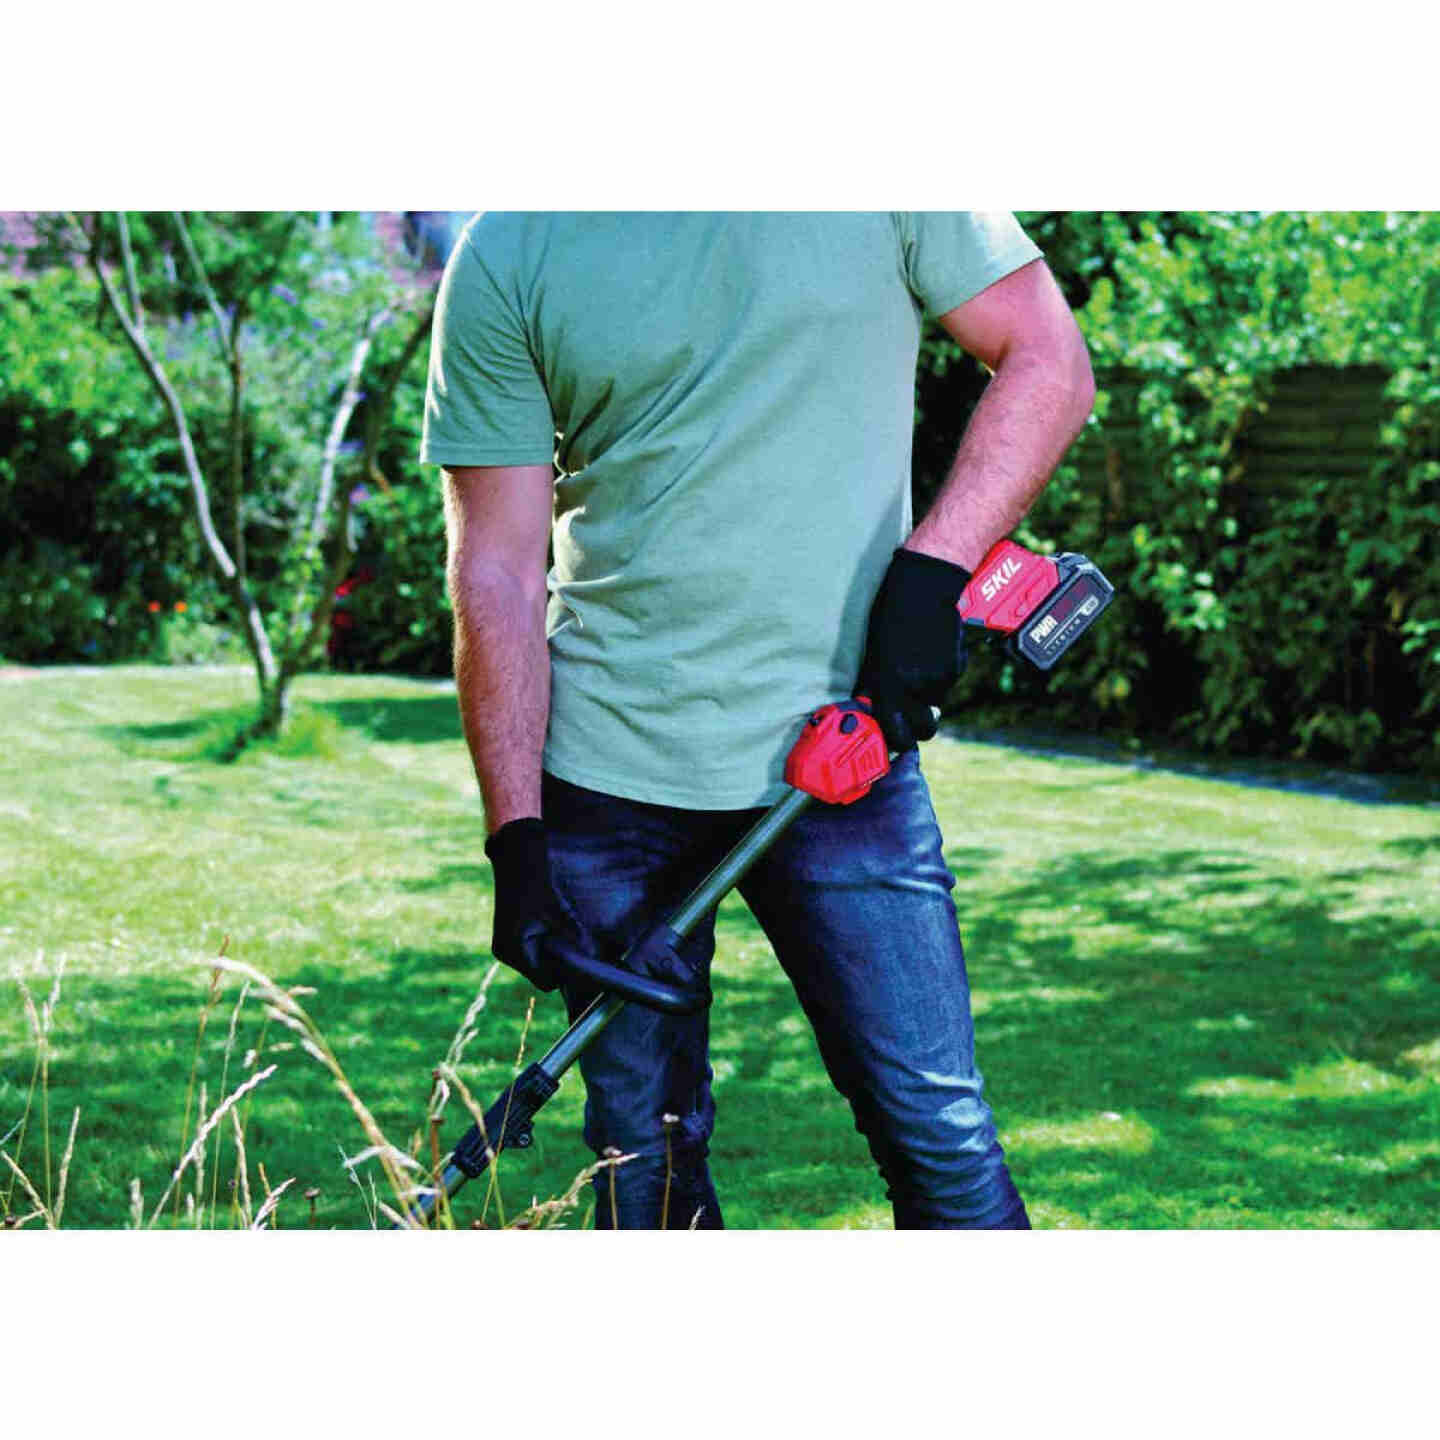 SKIL PWRCore 20V Brushless 13 In. Cordless String Trimmer Image 4